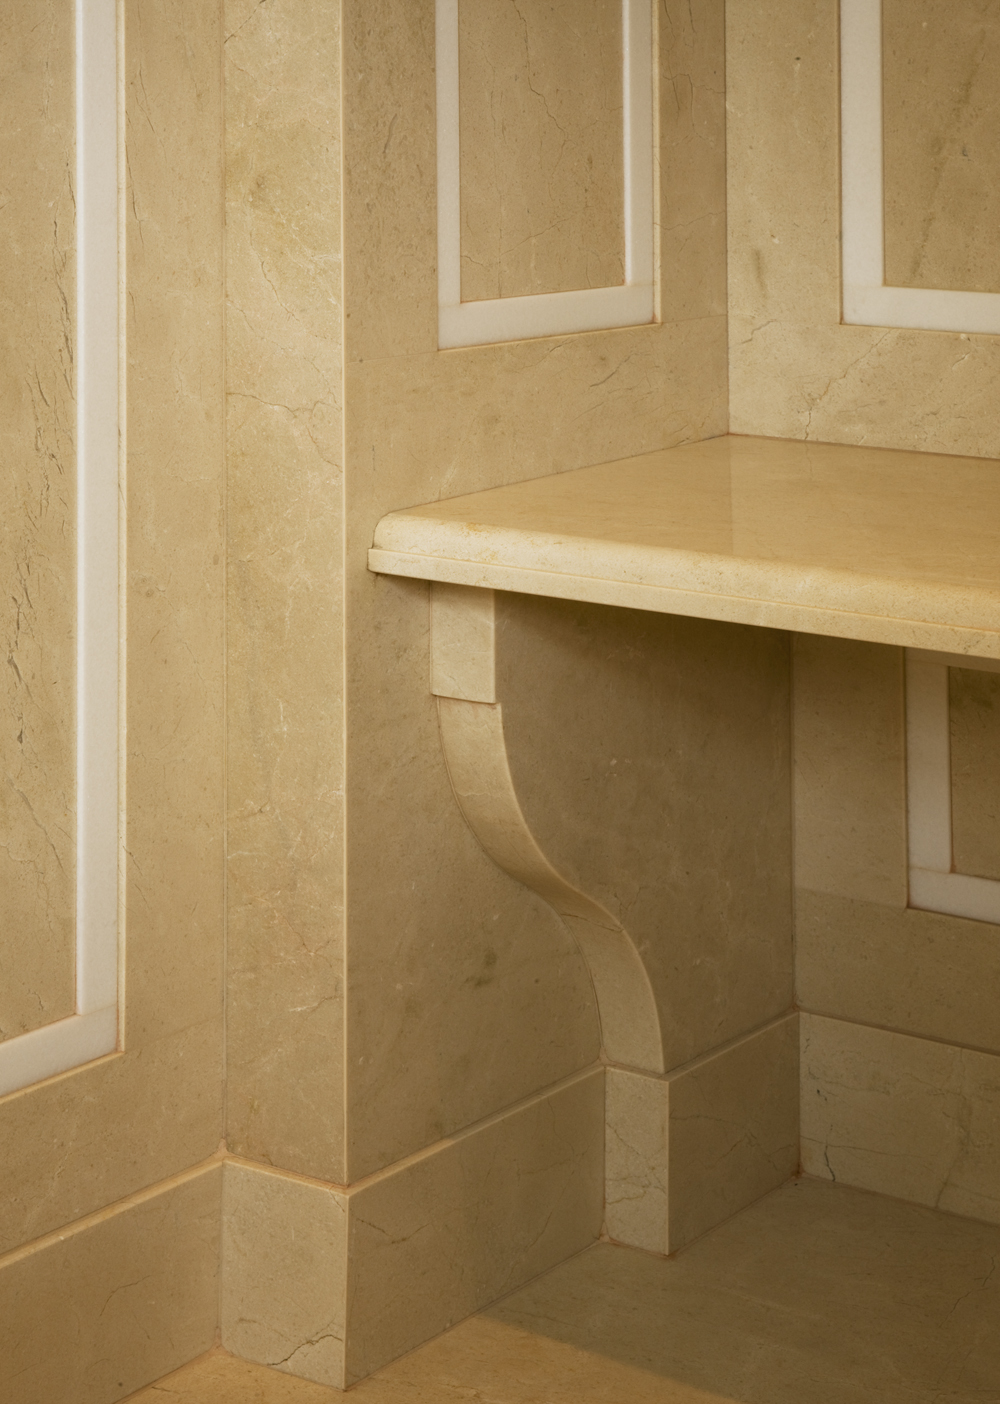 LSI-web-fifth-ave-interior-detail-1.jpg